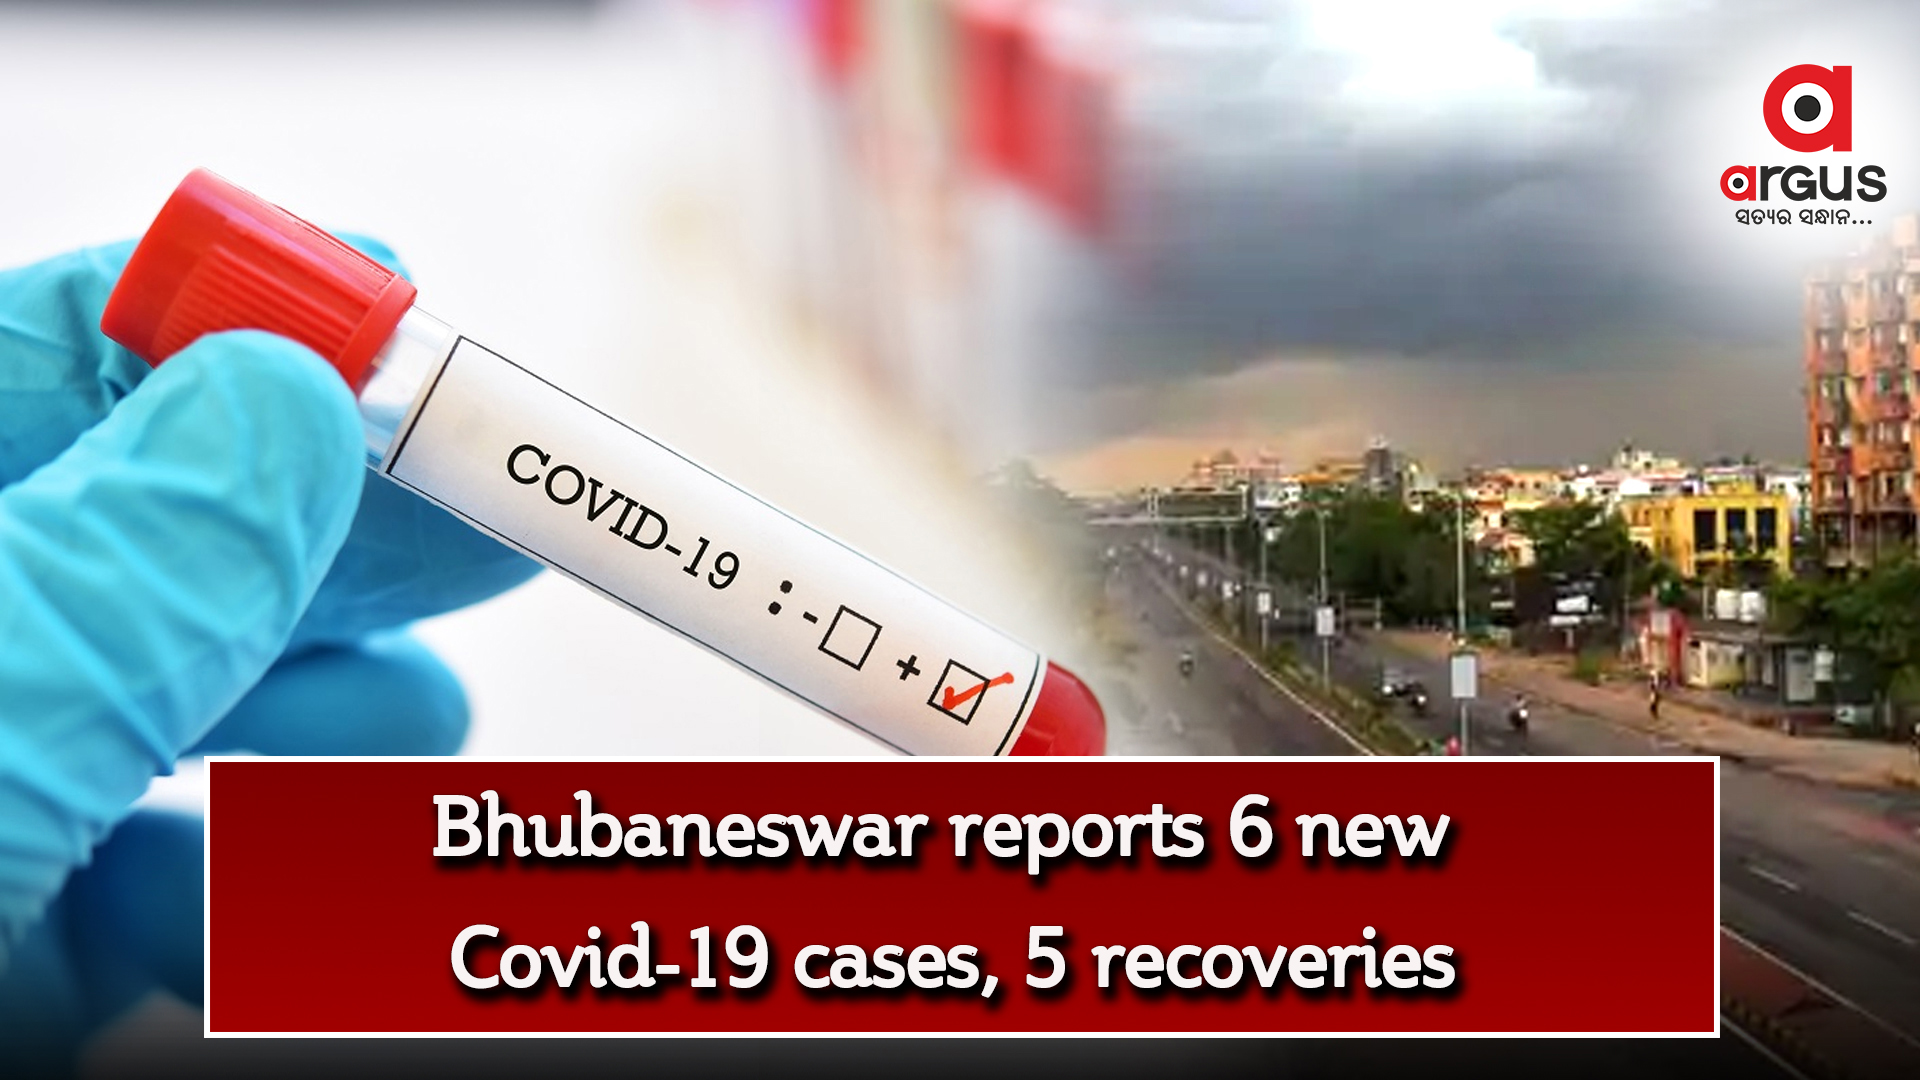 Bhubaneswar reports 6 new Covid-19 cases, 5 recoveries